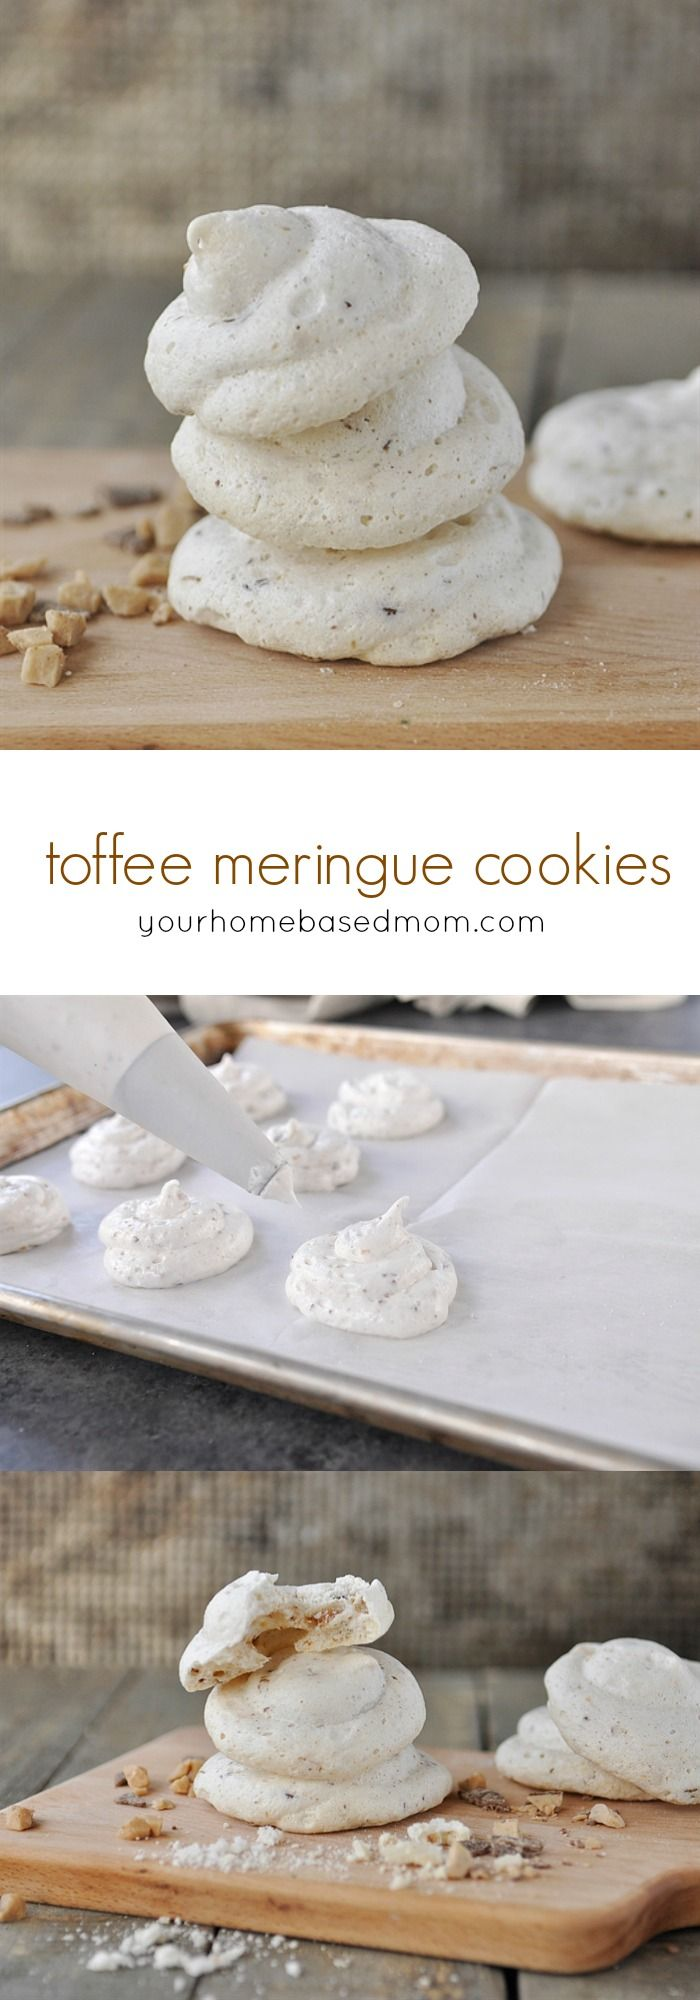 Toffee Meringue Cookies Recipe - crispy on the outside and chewy on the inside - These Toffee Meringue Cookies are going at the top of my To Bake list this holiday season!